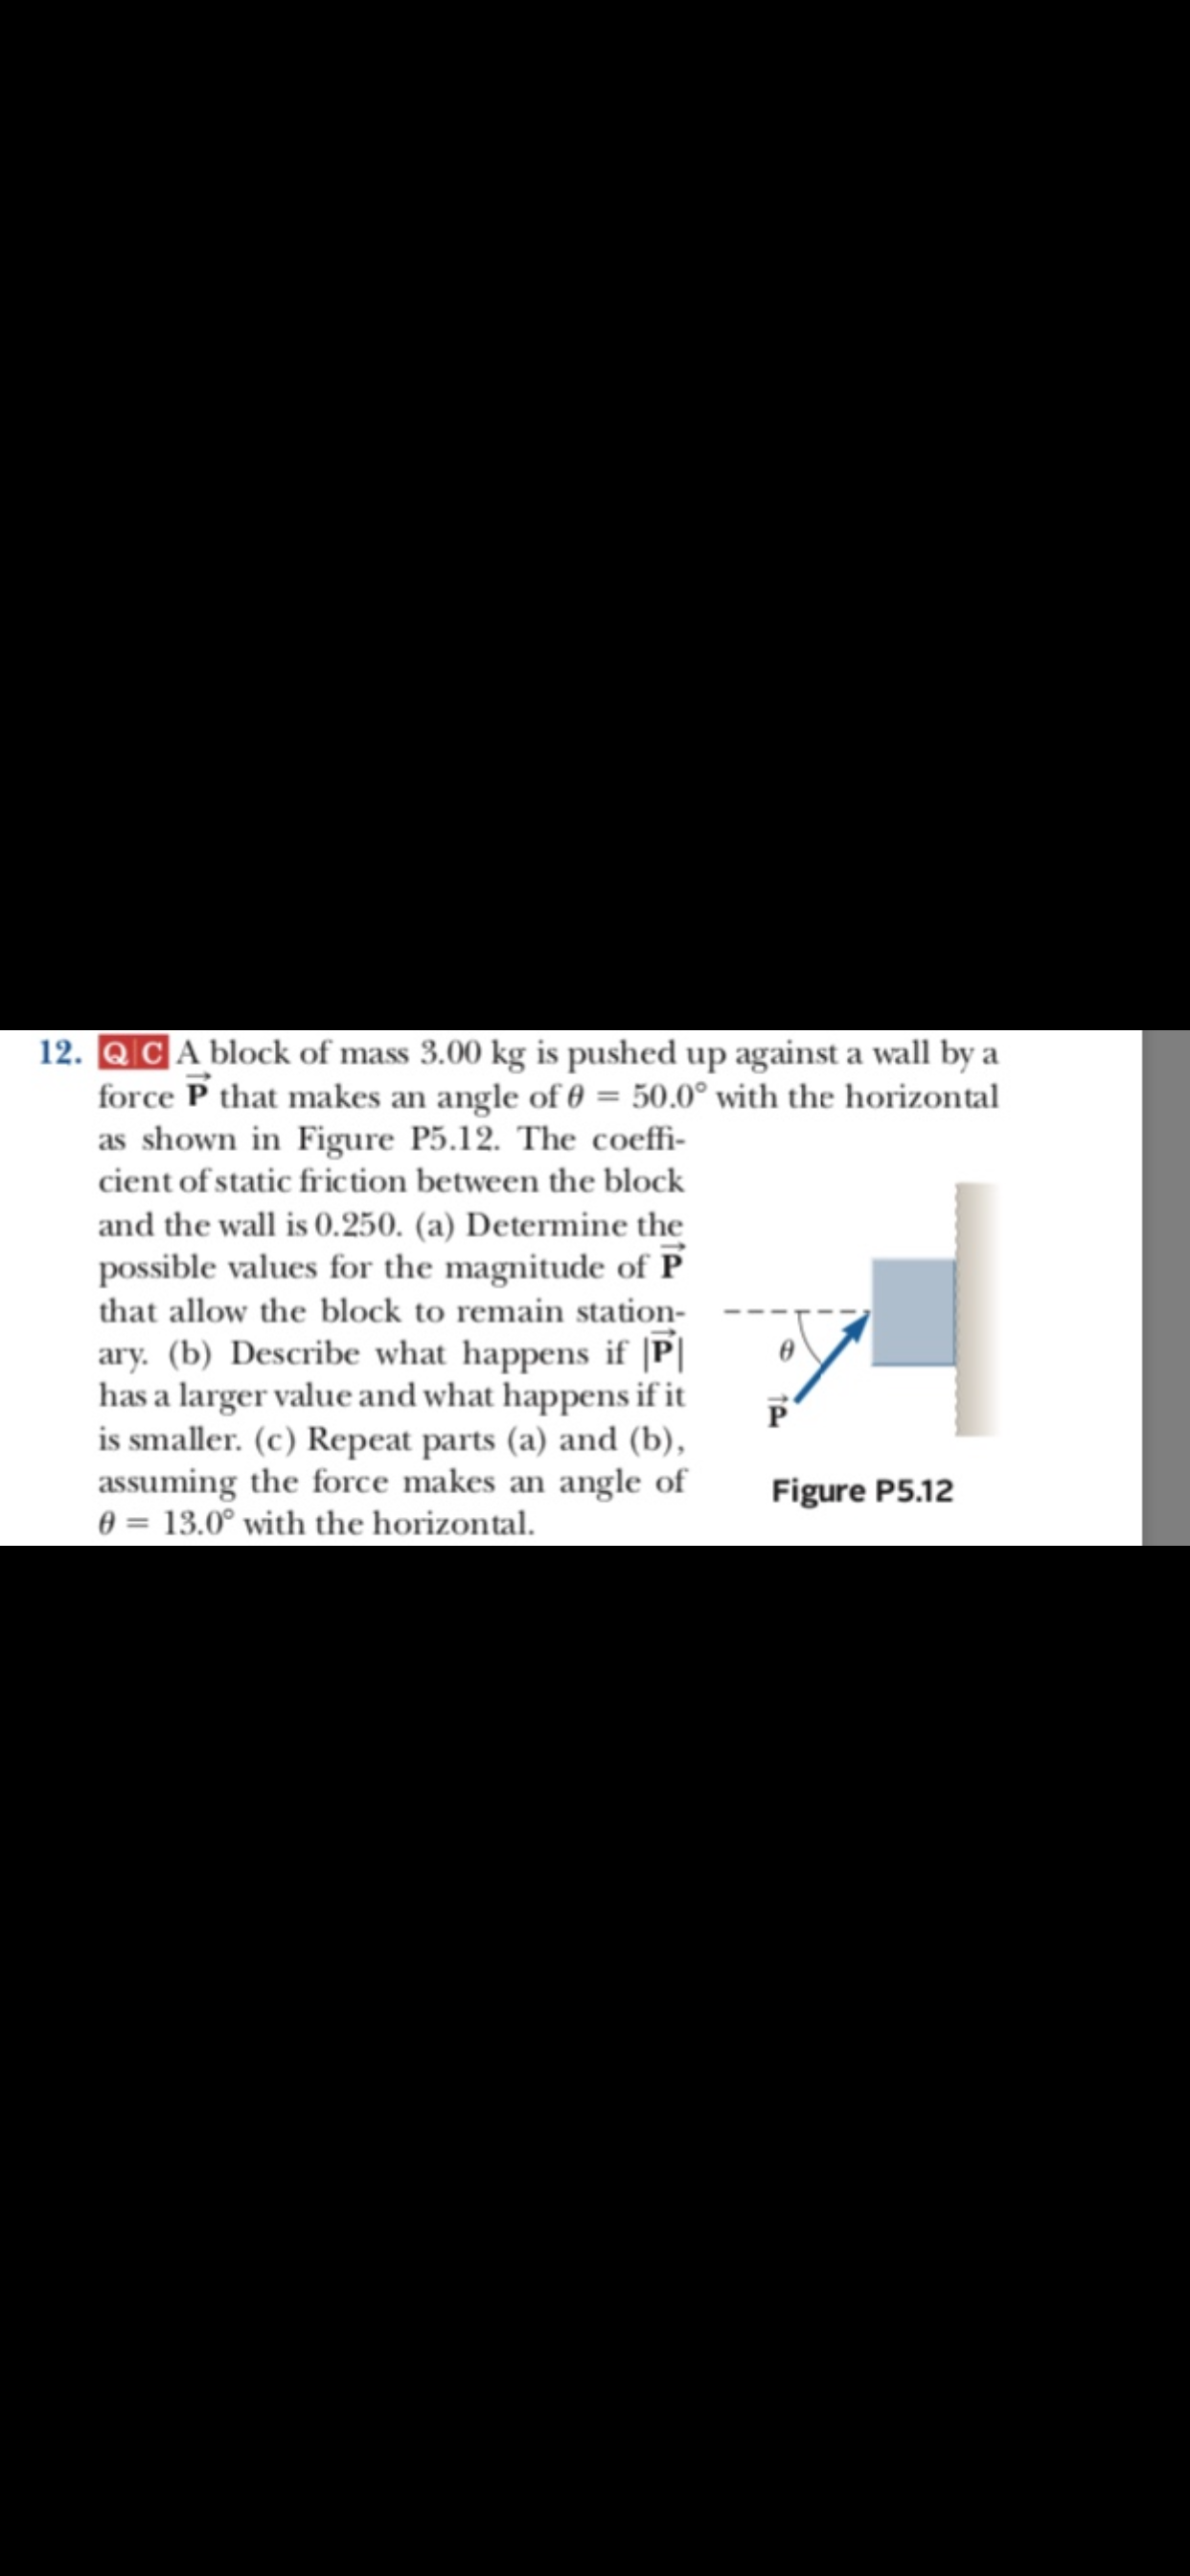 12. QCA block of mass 3.00 kg is pushed up against a wall by a force P that makes an angle of 0 50.0° with the horizontal as shown in Figure P5.12. The coeffi- cient of static fric tion between the block and the wall is 0.250. (a) Determine the possible values for the magnitude of P that allow the block to remain station- ary. (b) Describe what happens if |P has a larger value and what happens if it is smaller. (c) Repeat parts (a) and (b), assuming the force makes an angle of 0 13.0° with the horizontal. Figure P5.12